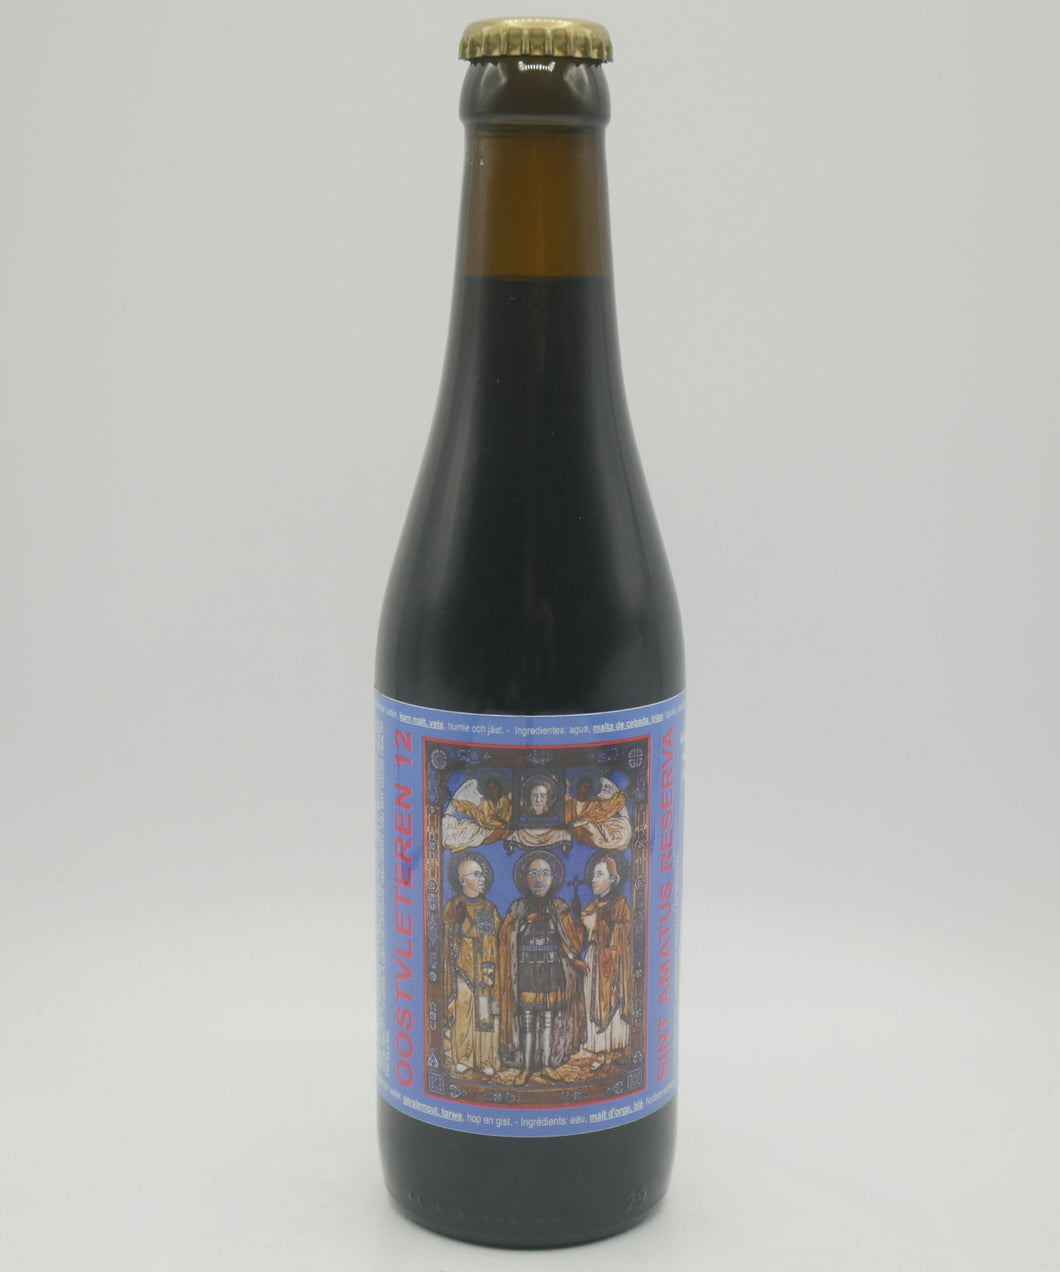 Sint Amatus Reserva - De Struise Brouwers - Woodford Reserve Barrel Aged Quadrupel, 10.5%, 330ml Bottle